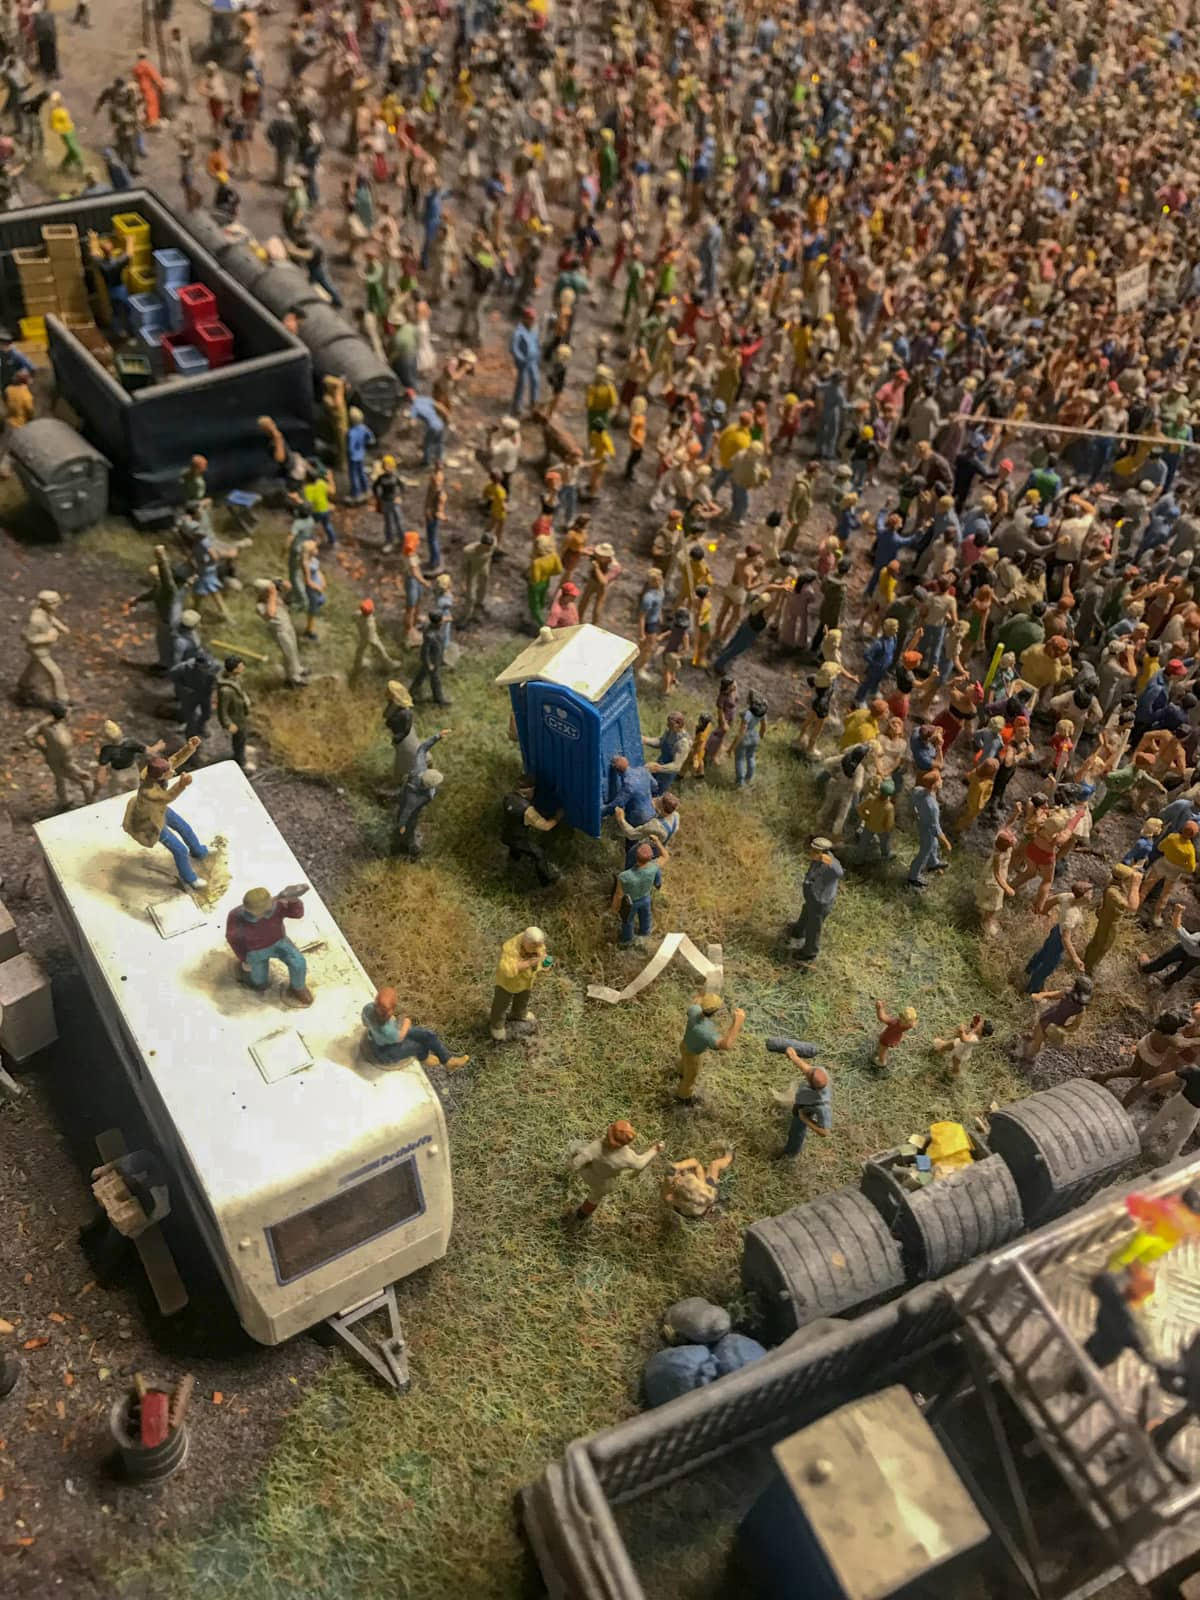 Miniature figurines assembled in a crowd like a festival crowd. There are some figurines carrying a portable toilet